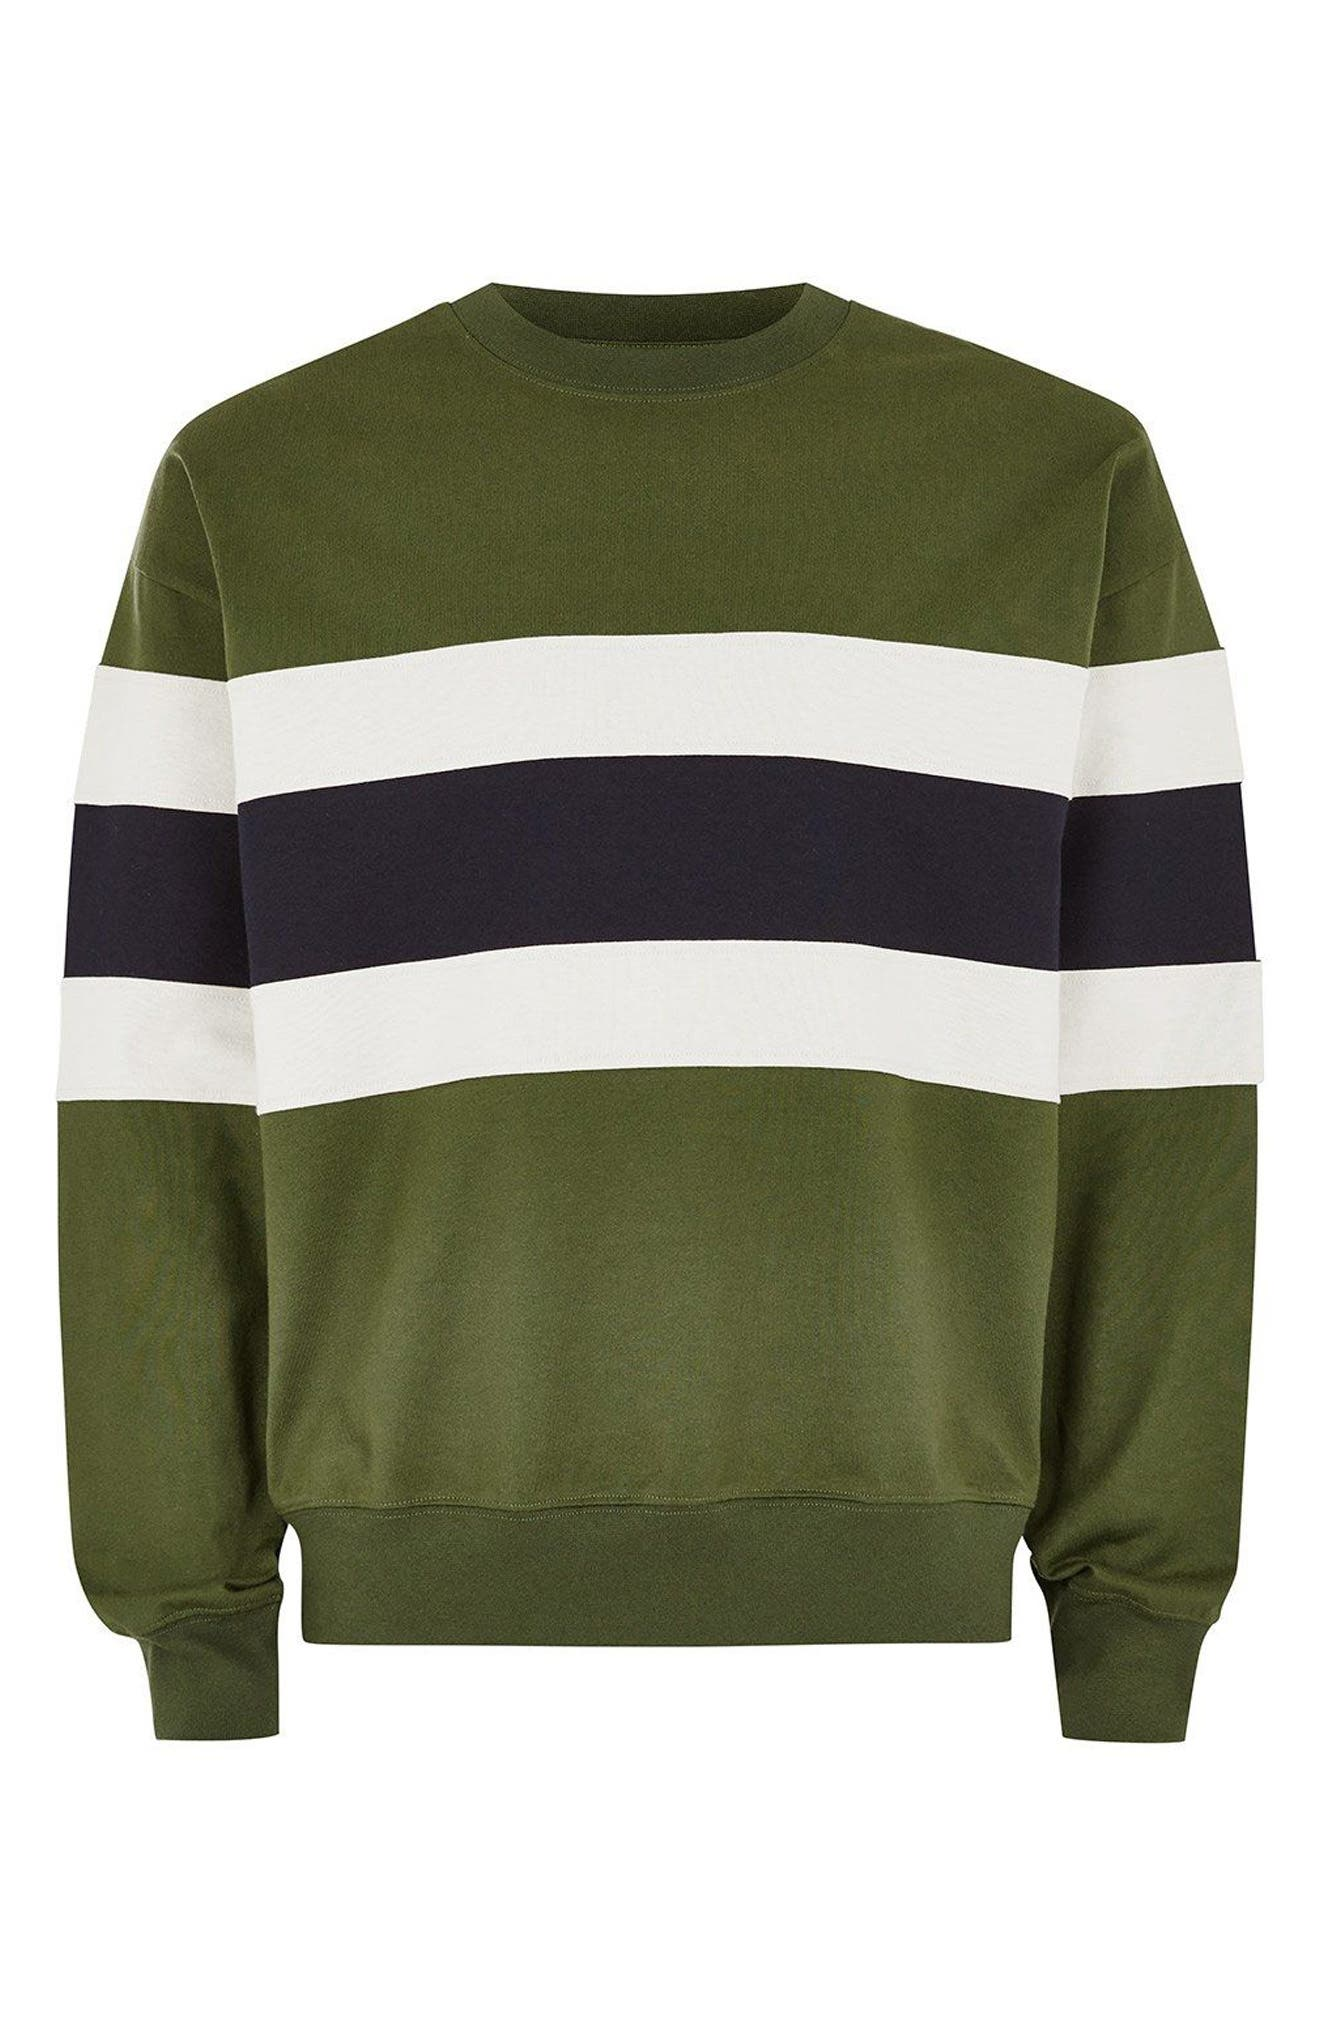 Colorblock Stripe Sweatshirt,                             Alternate thumbnail 6, color,                             330